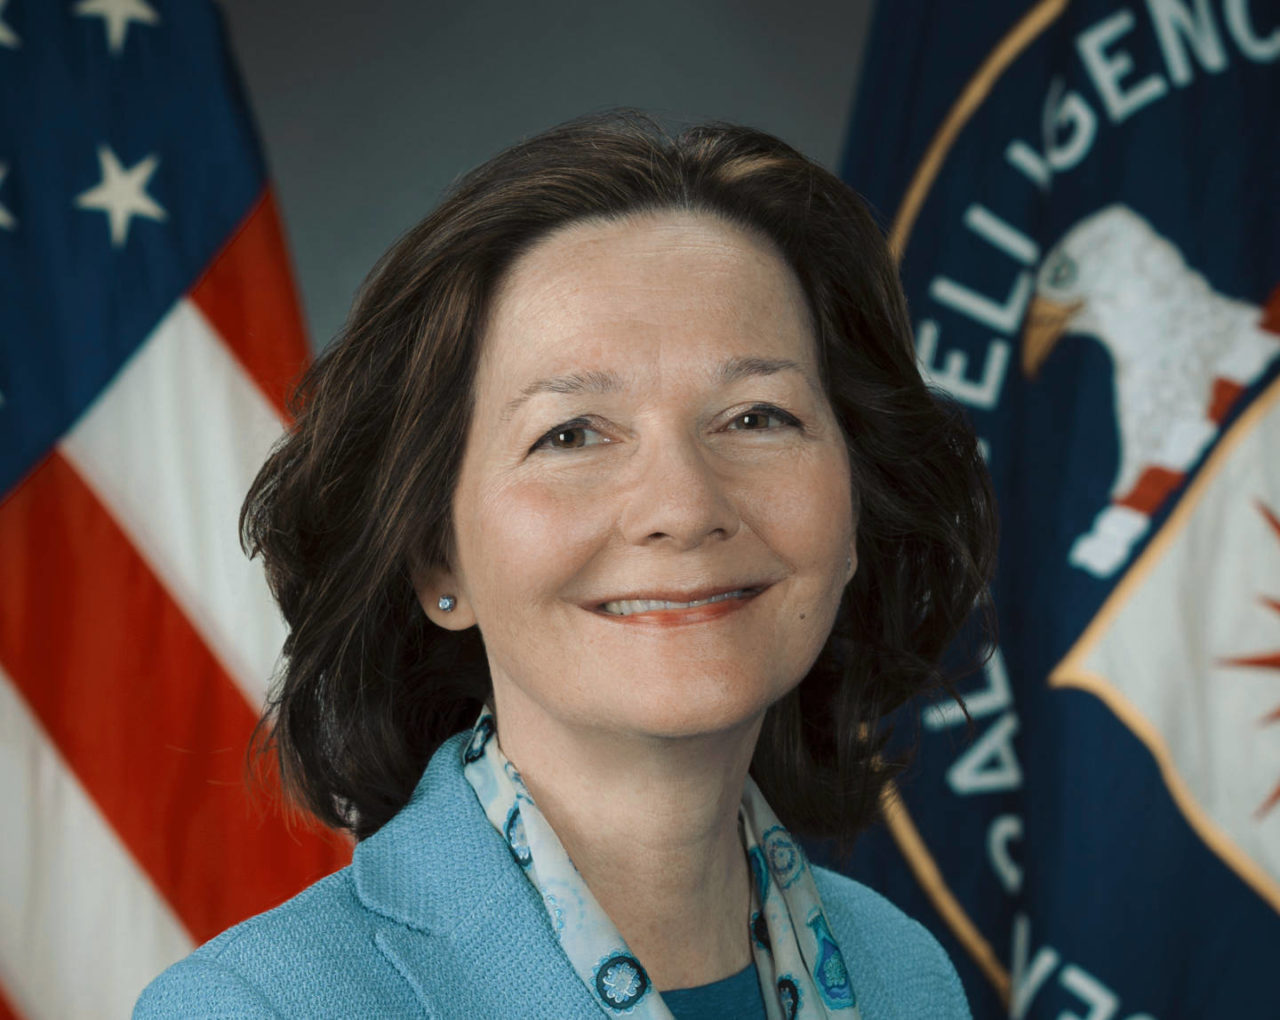 https://thesubmarine.it/wp-content/uploads/2018/05/Gina_Haspel_official_CIA_portrait-1280x1020.jpg